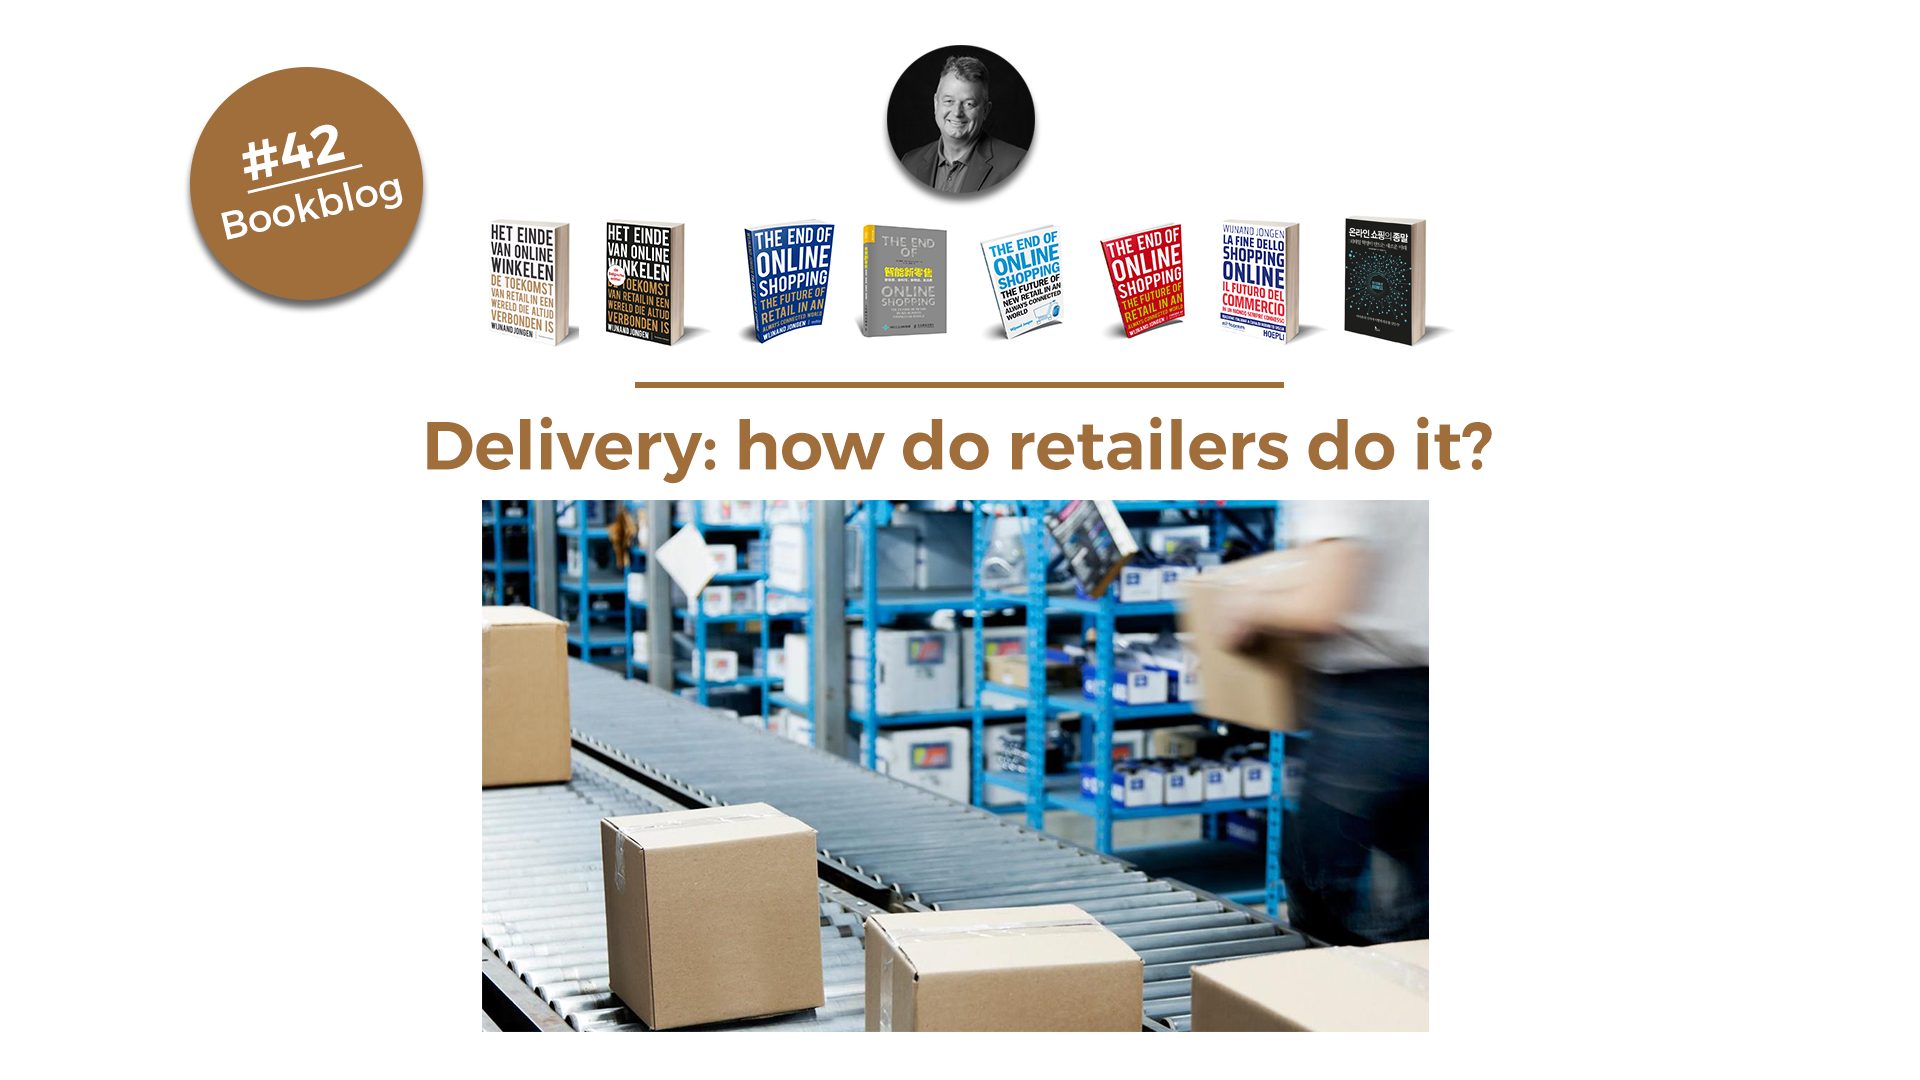 Delivery: how do retailers do it?